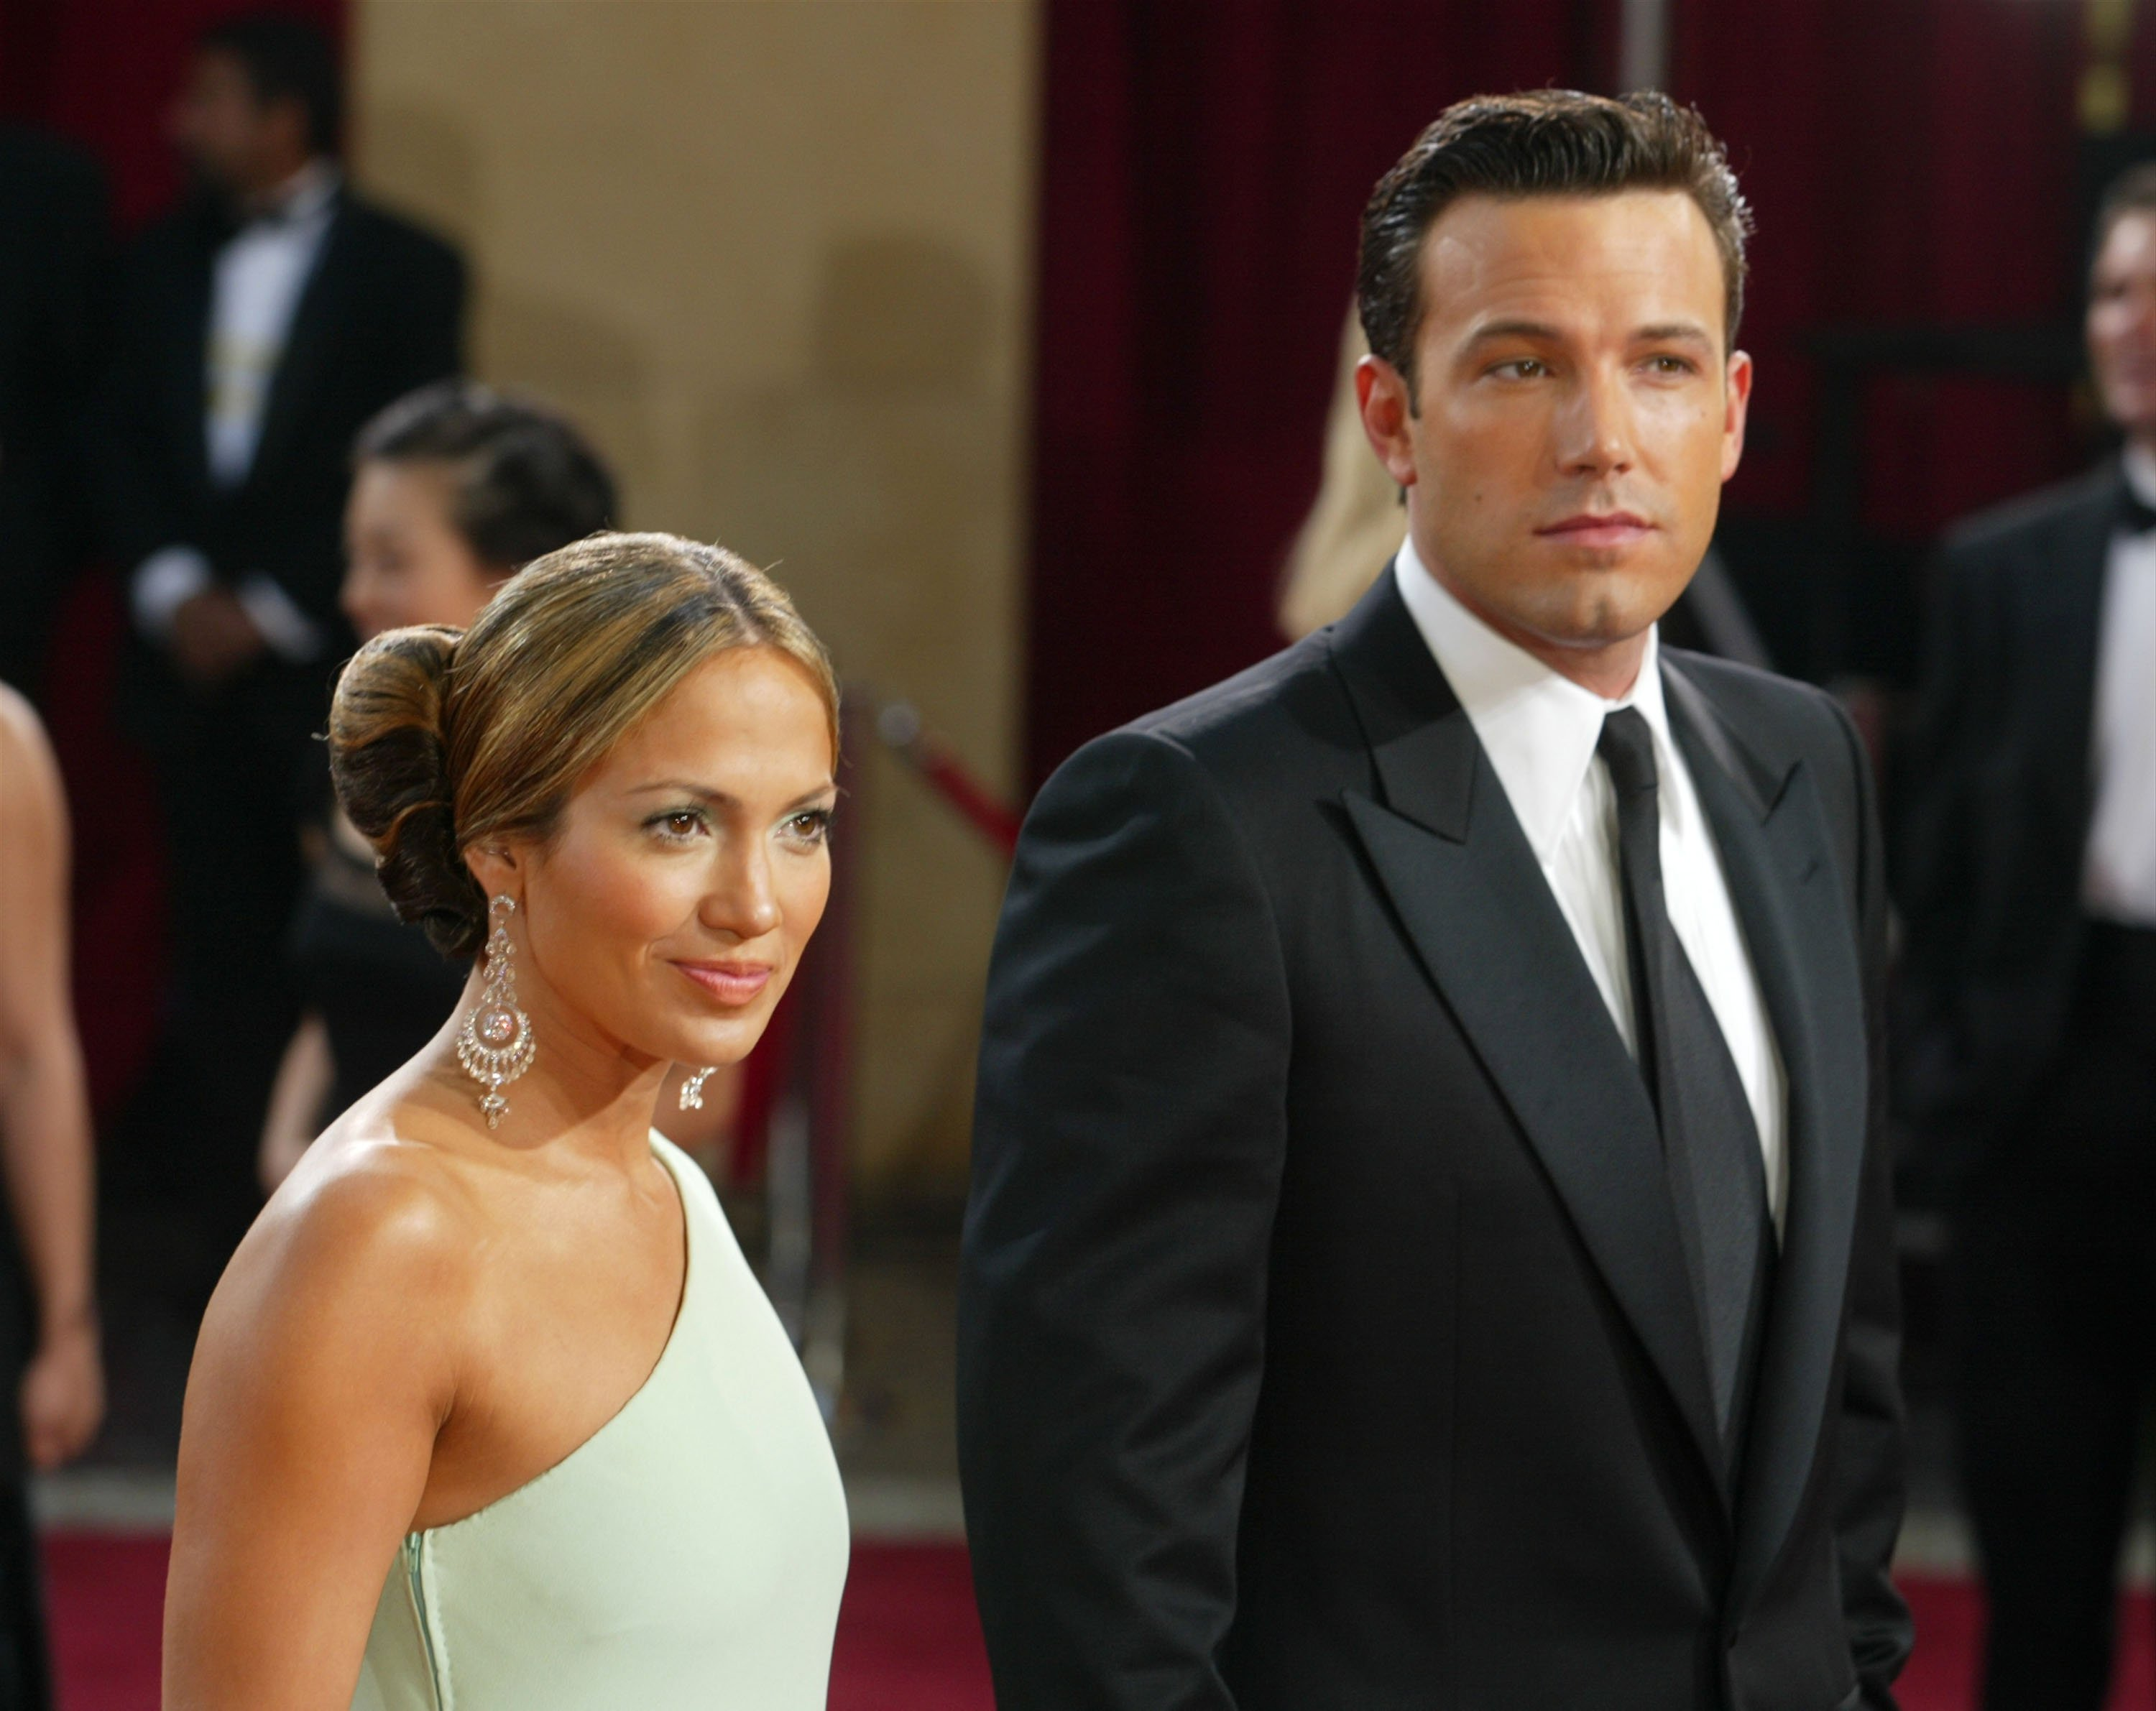 Ben Affleck and Jennifer Lopez attend the 75th Annual Academy Awards on March 23, 2003. | Source: Getty Images